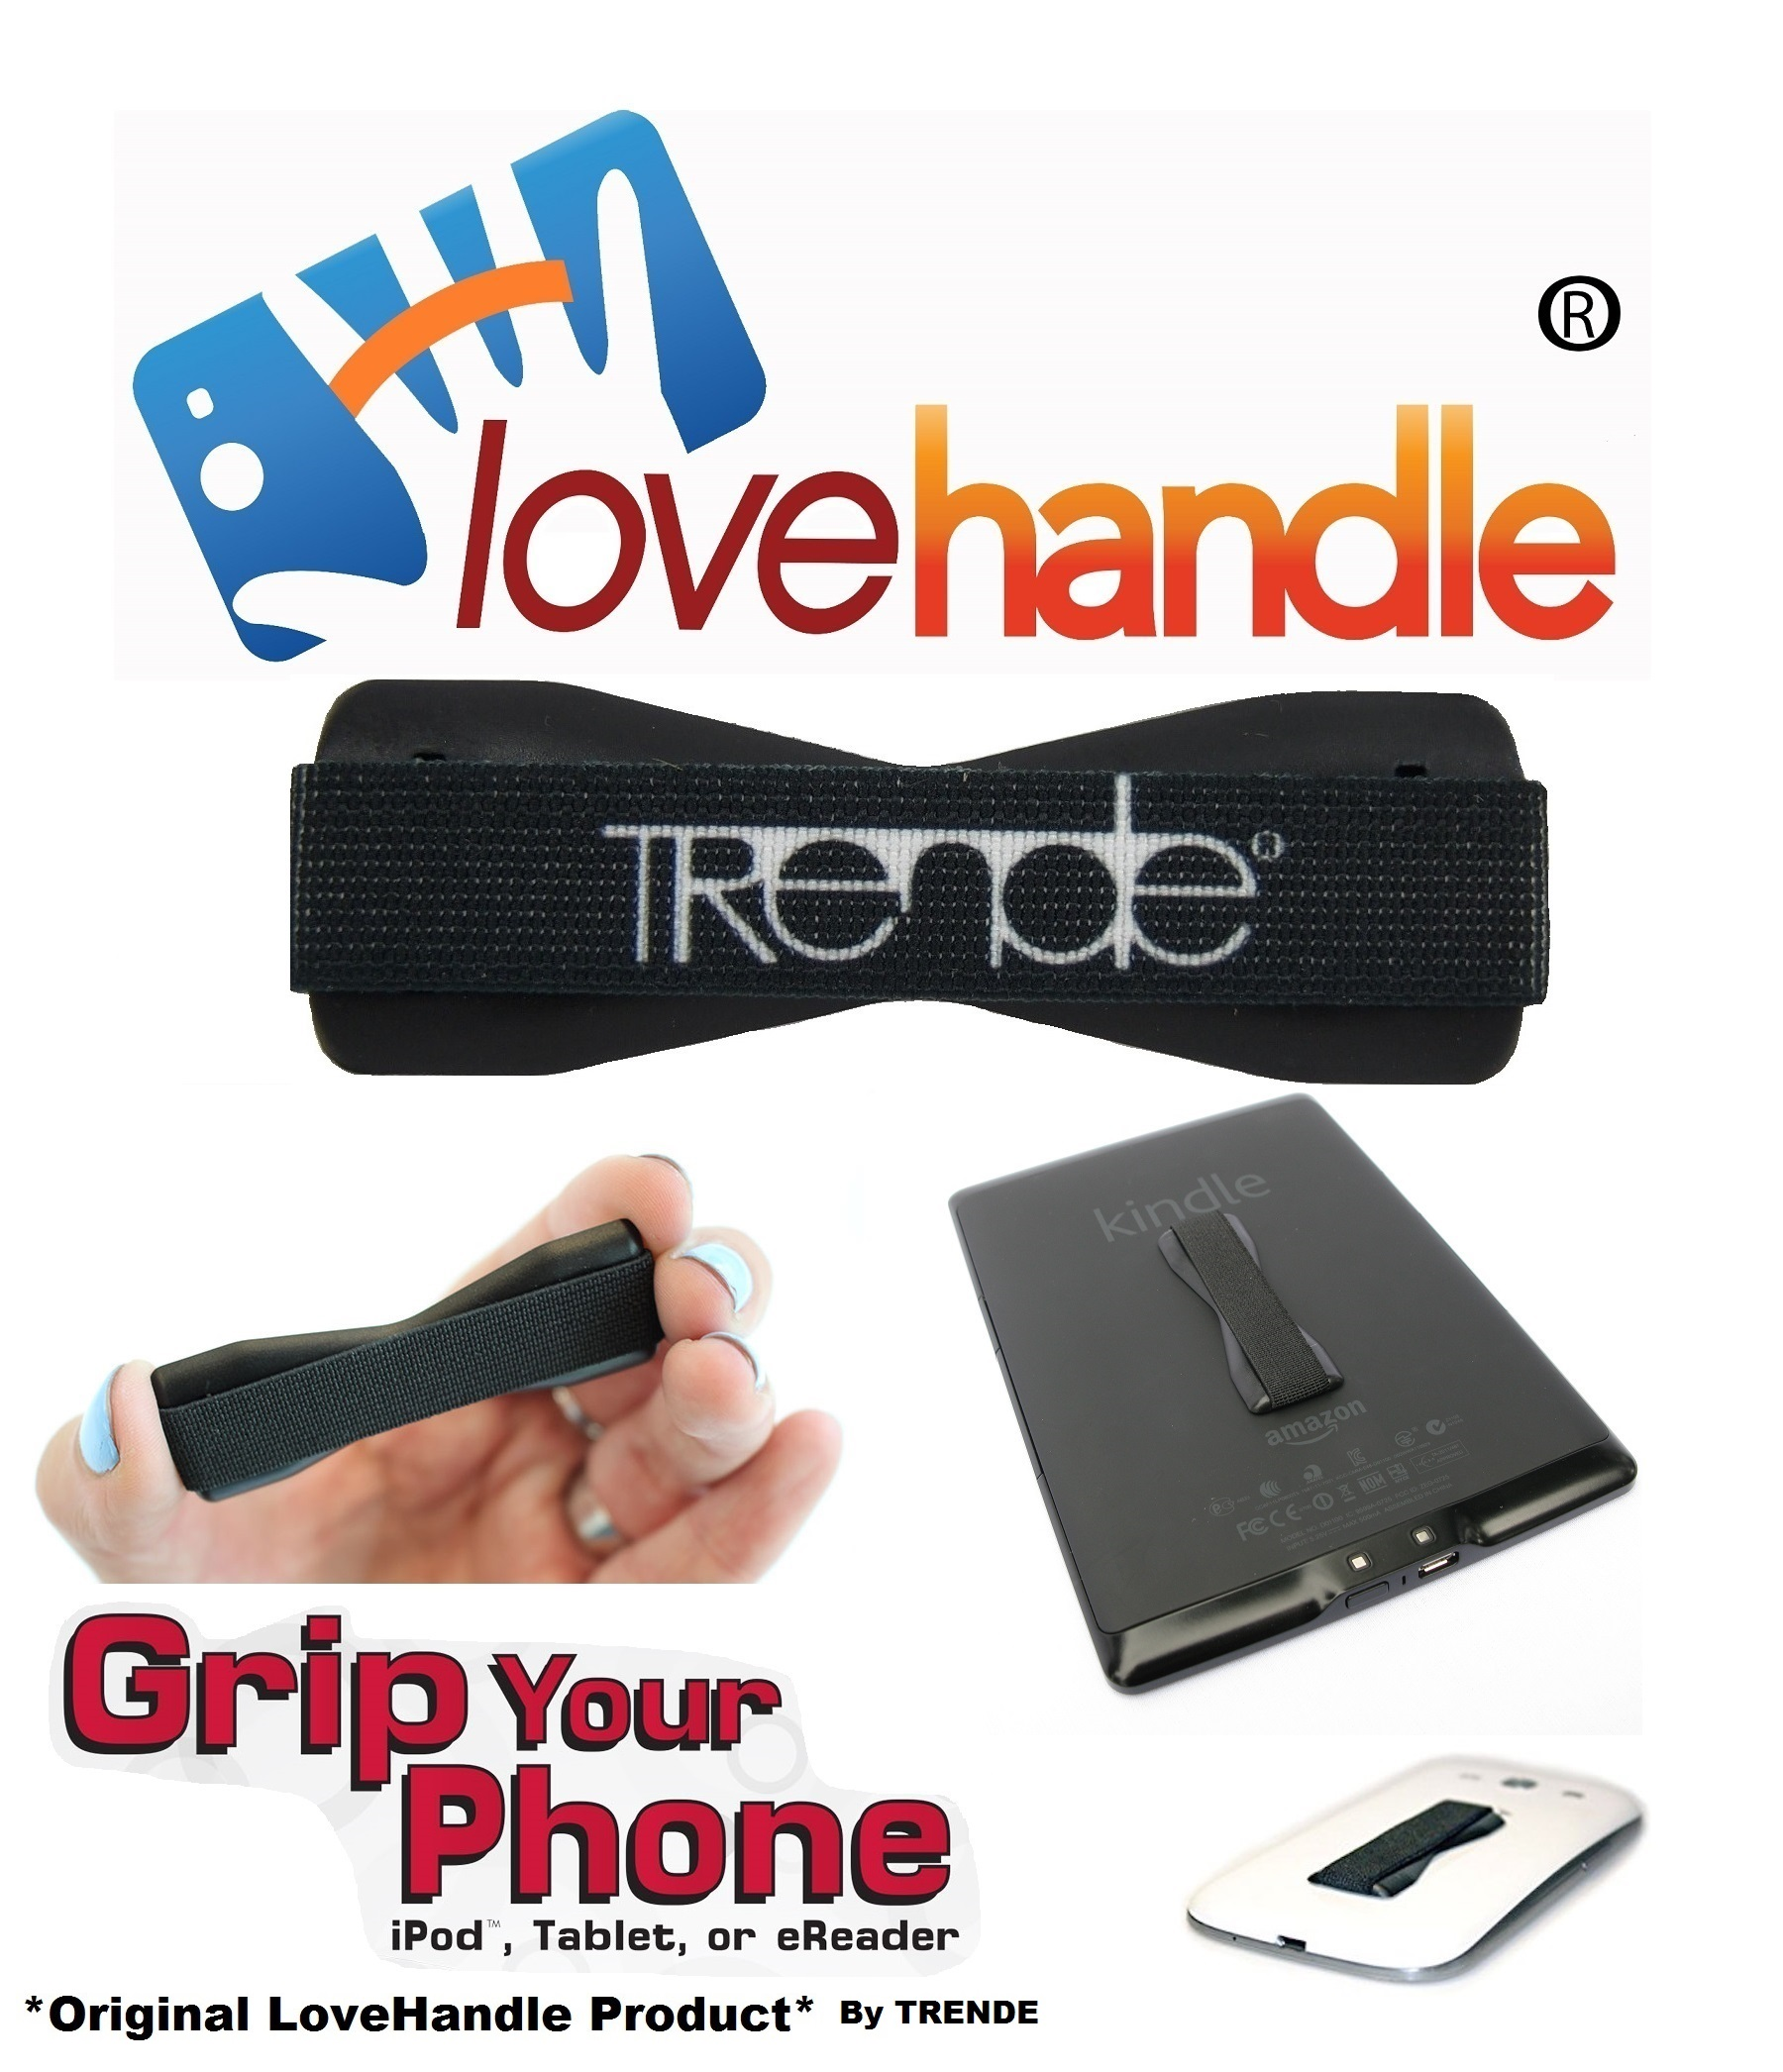 LoveHandle (original SlingGrip) - As Seen On TV - Universal Grip For Mobile Devices